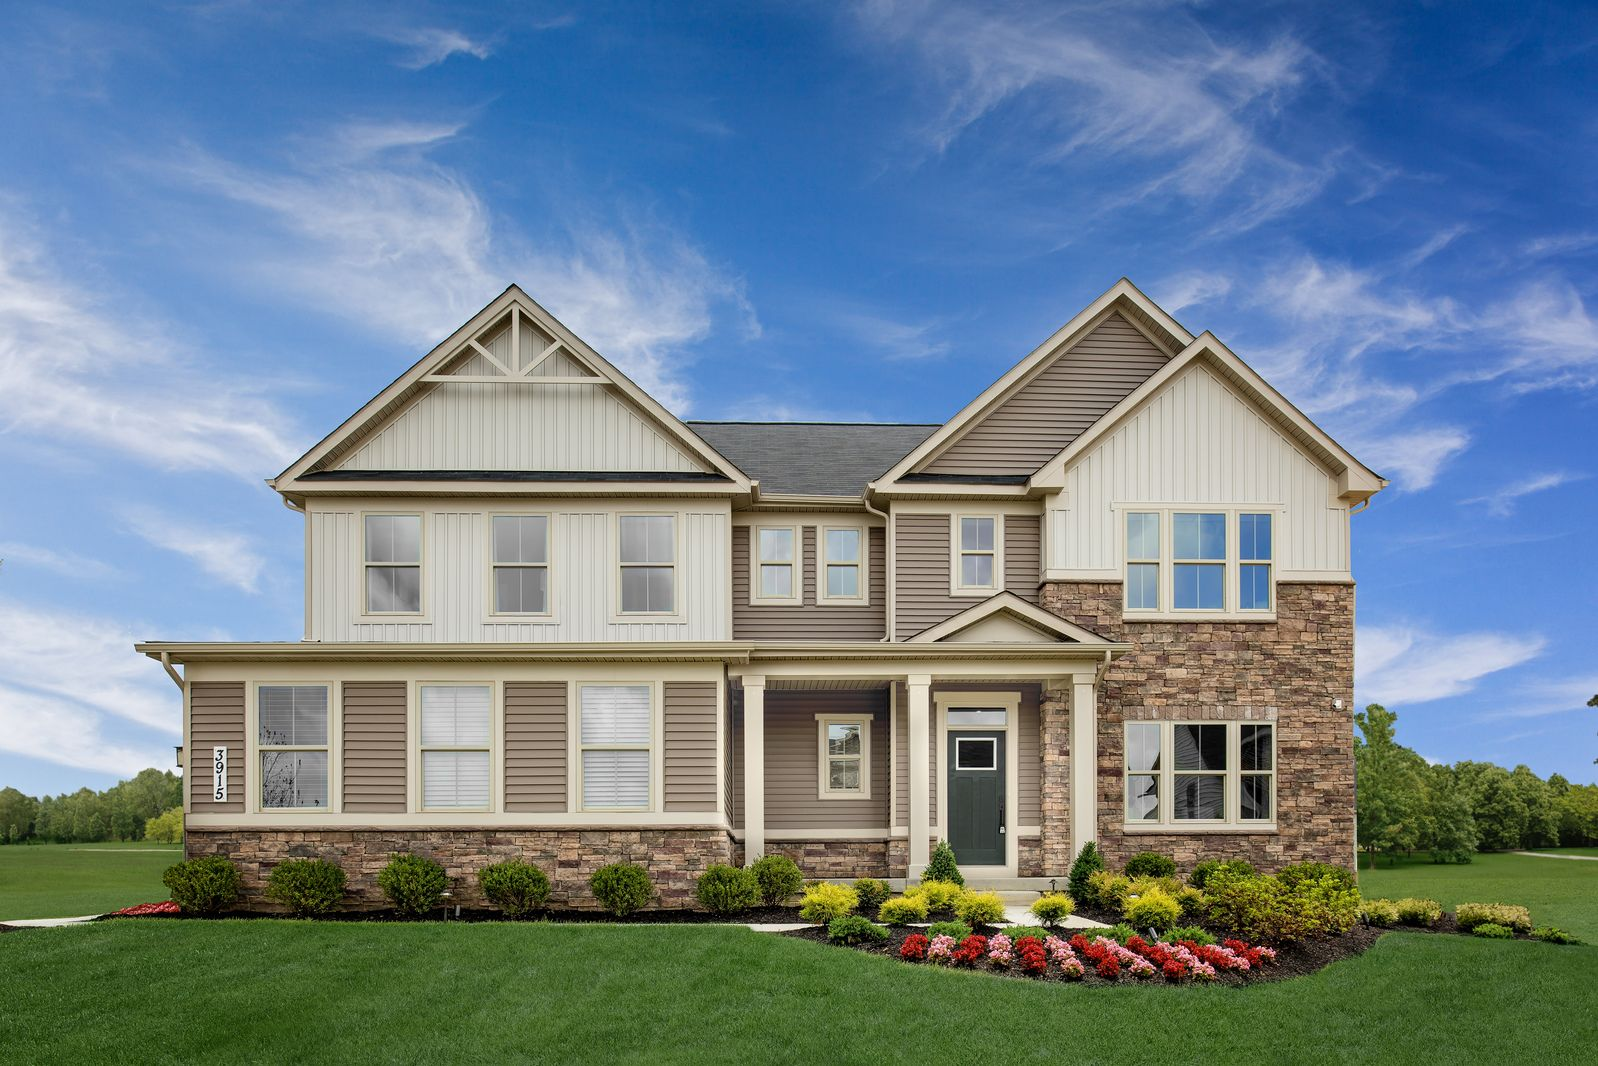 WELCOME TO DANVILLE ESTATES IN BRANDYWINE, MD